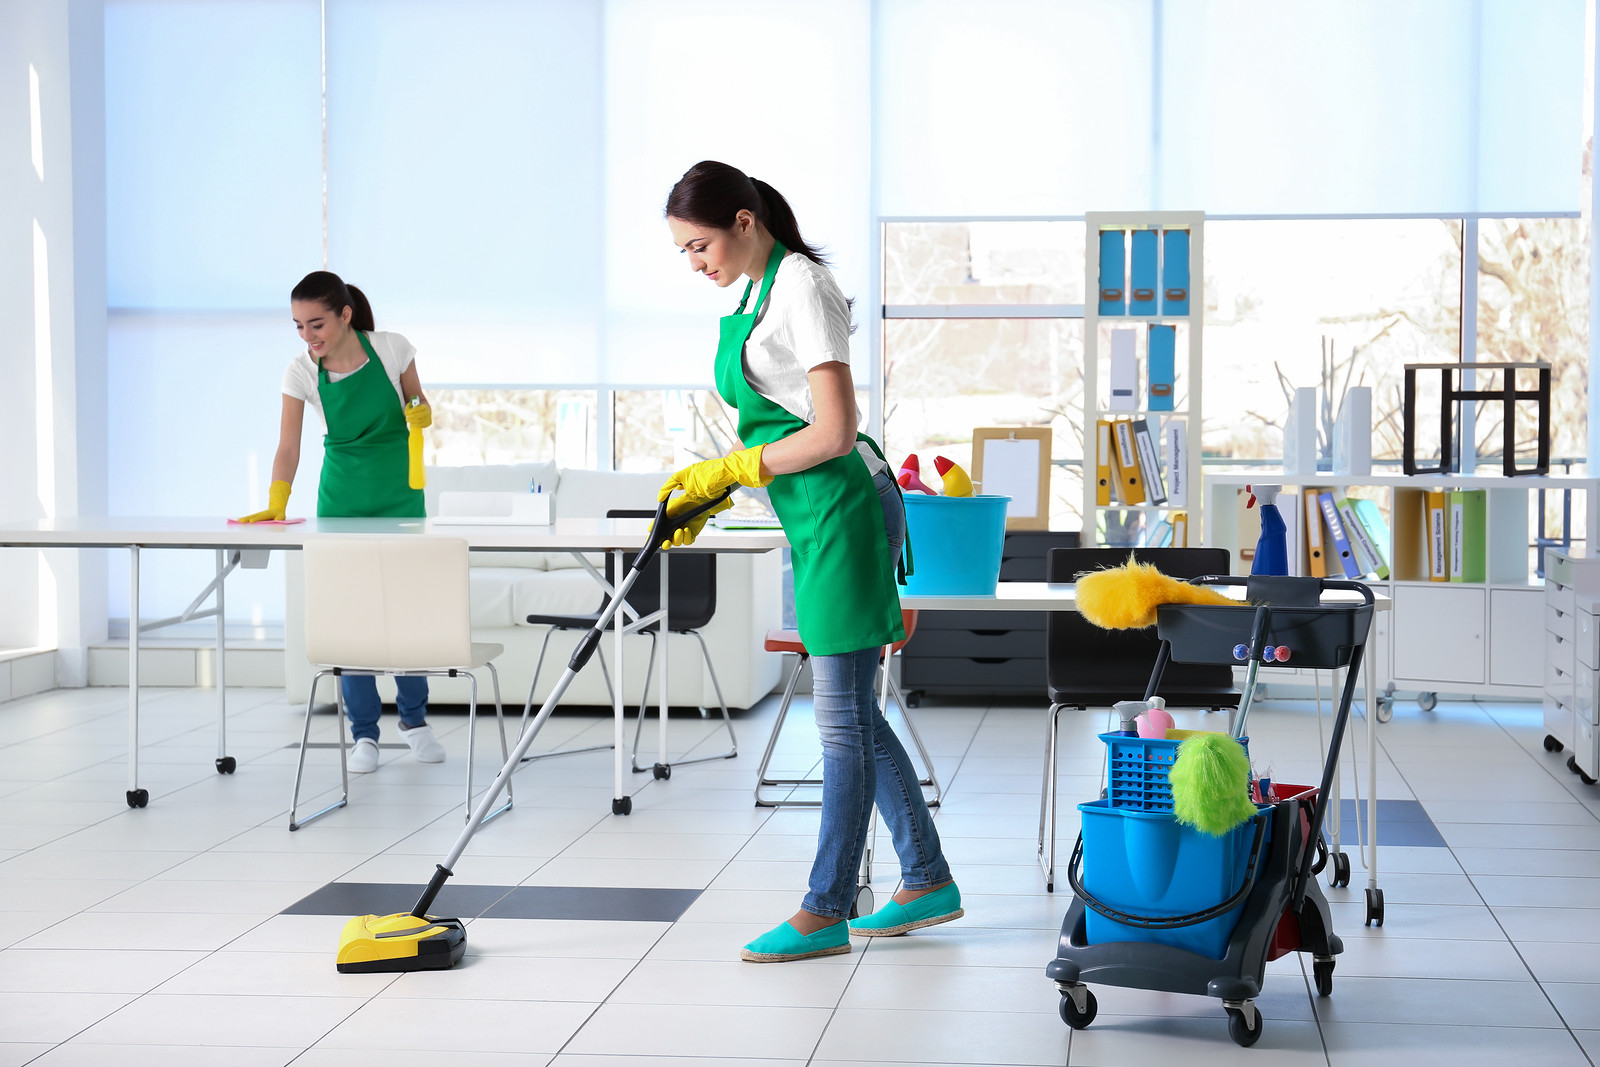 Quality Cleaning Services: Keeping Your Office Tidy Effortlessly and Properly